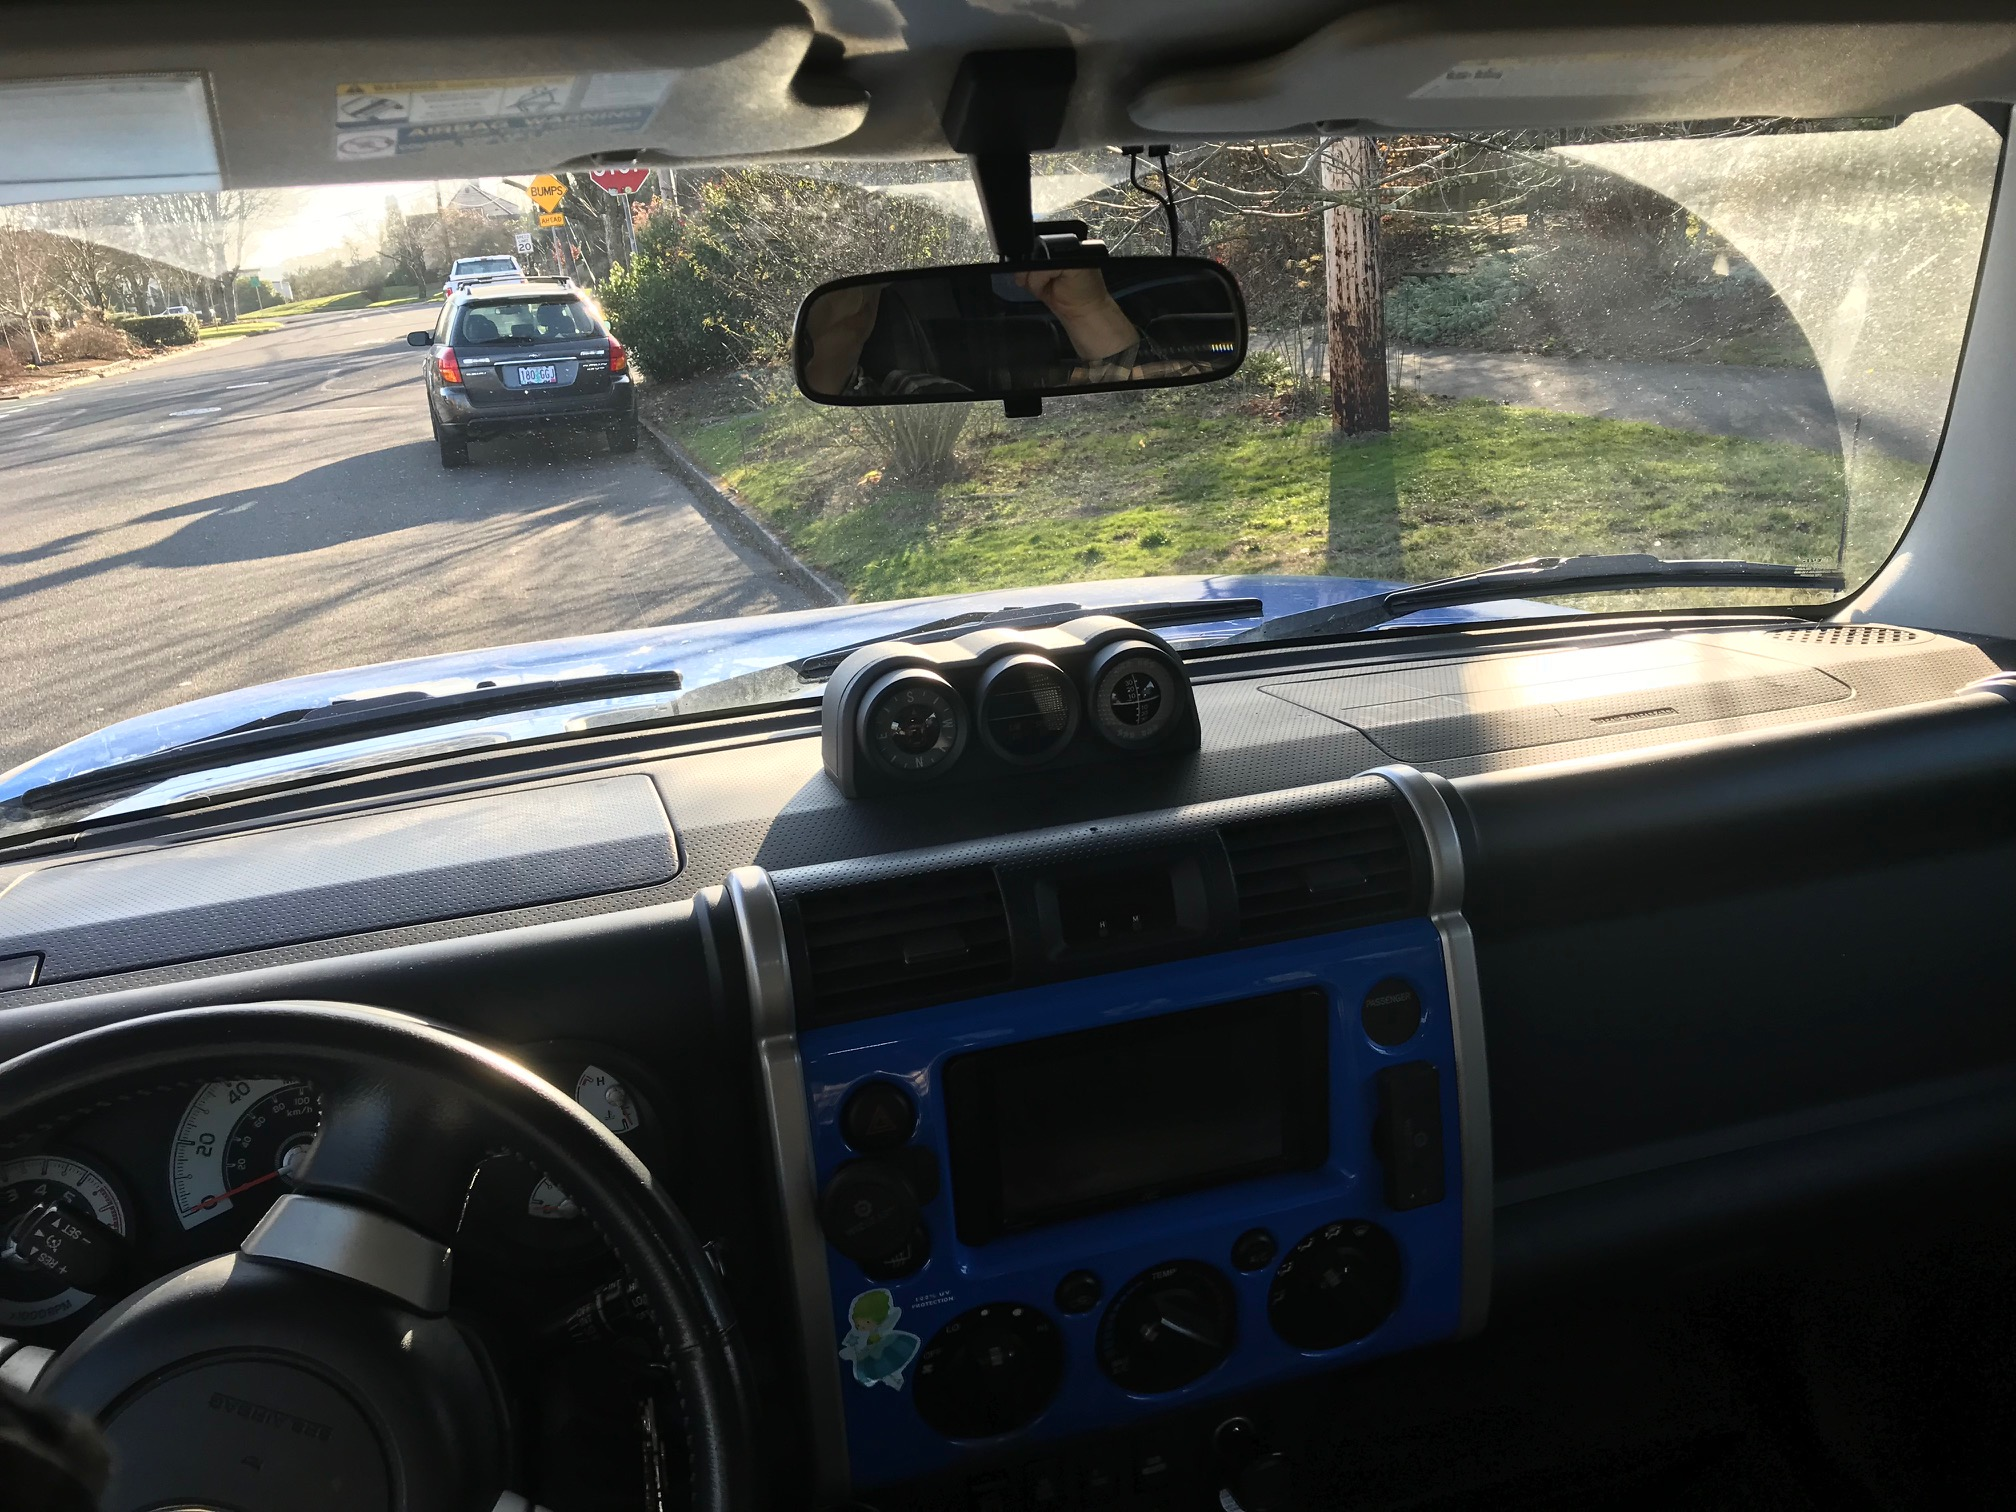 What did you do TO your FJ Cruiser TODAY?-img_6792.jpg